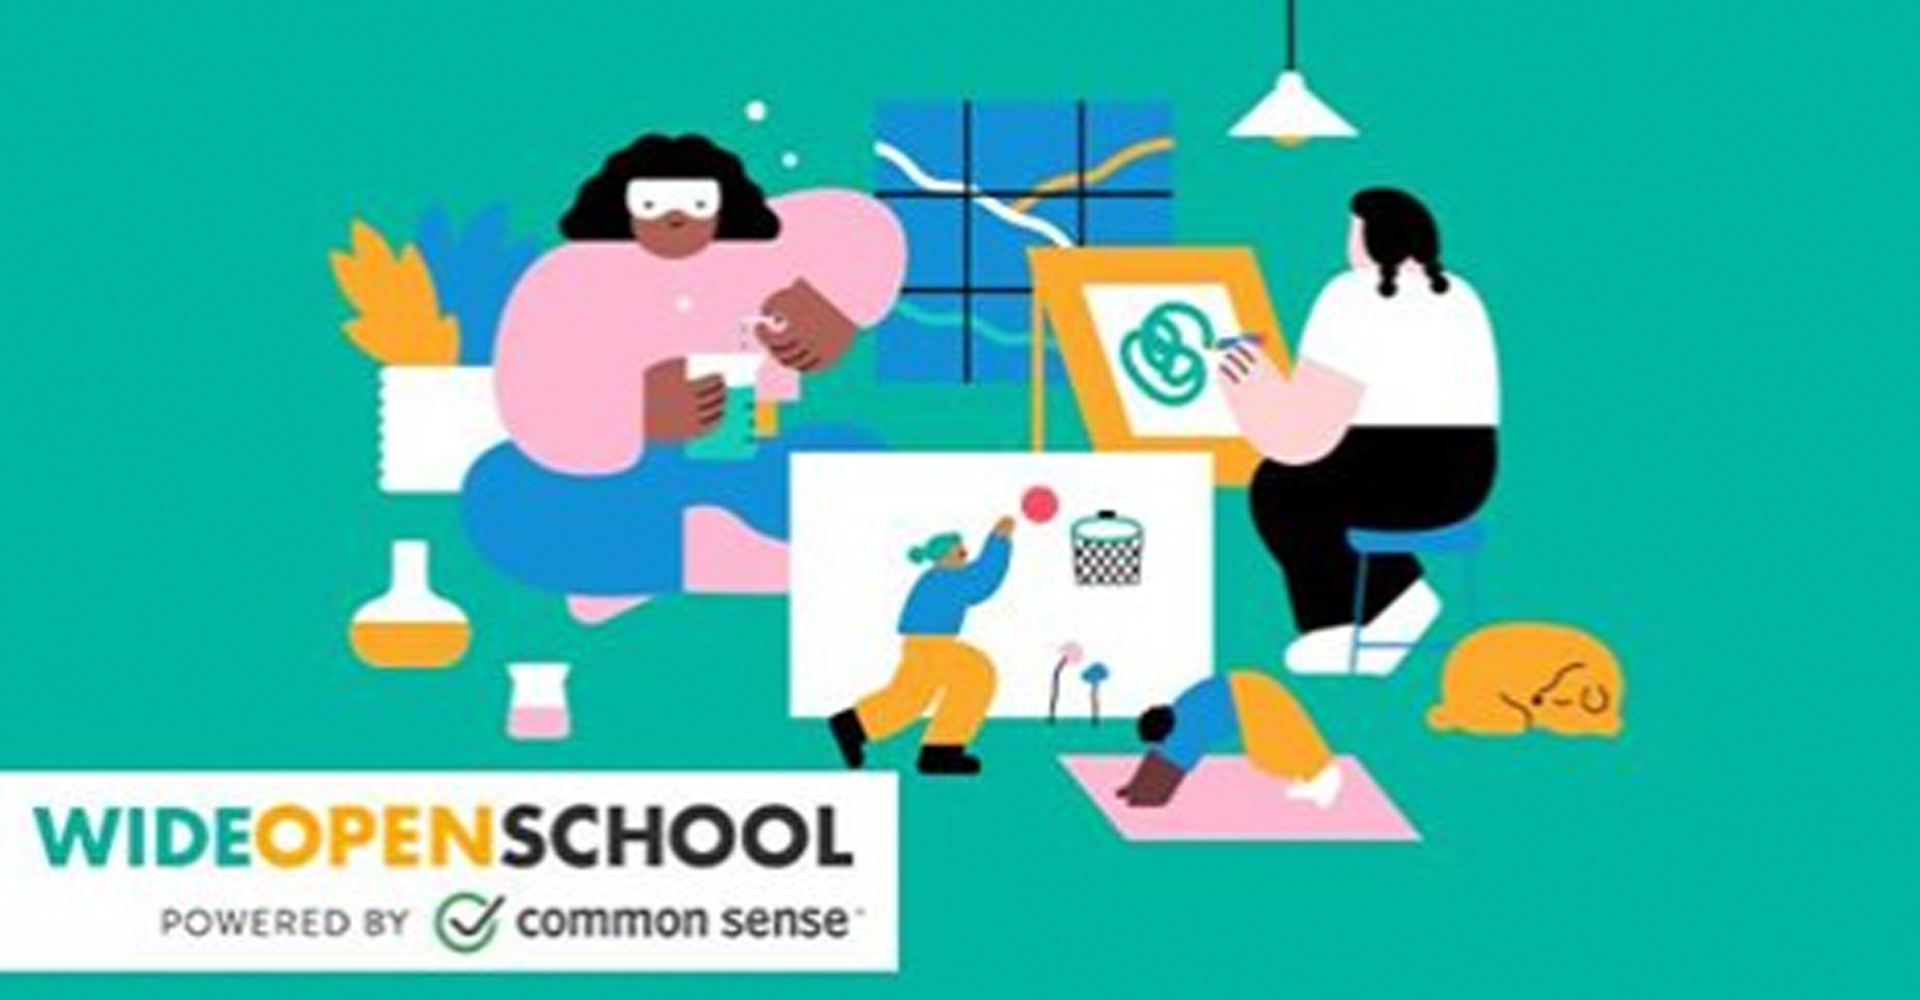 Common Sense Launches Wide Open School